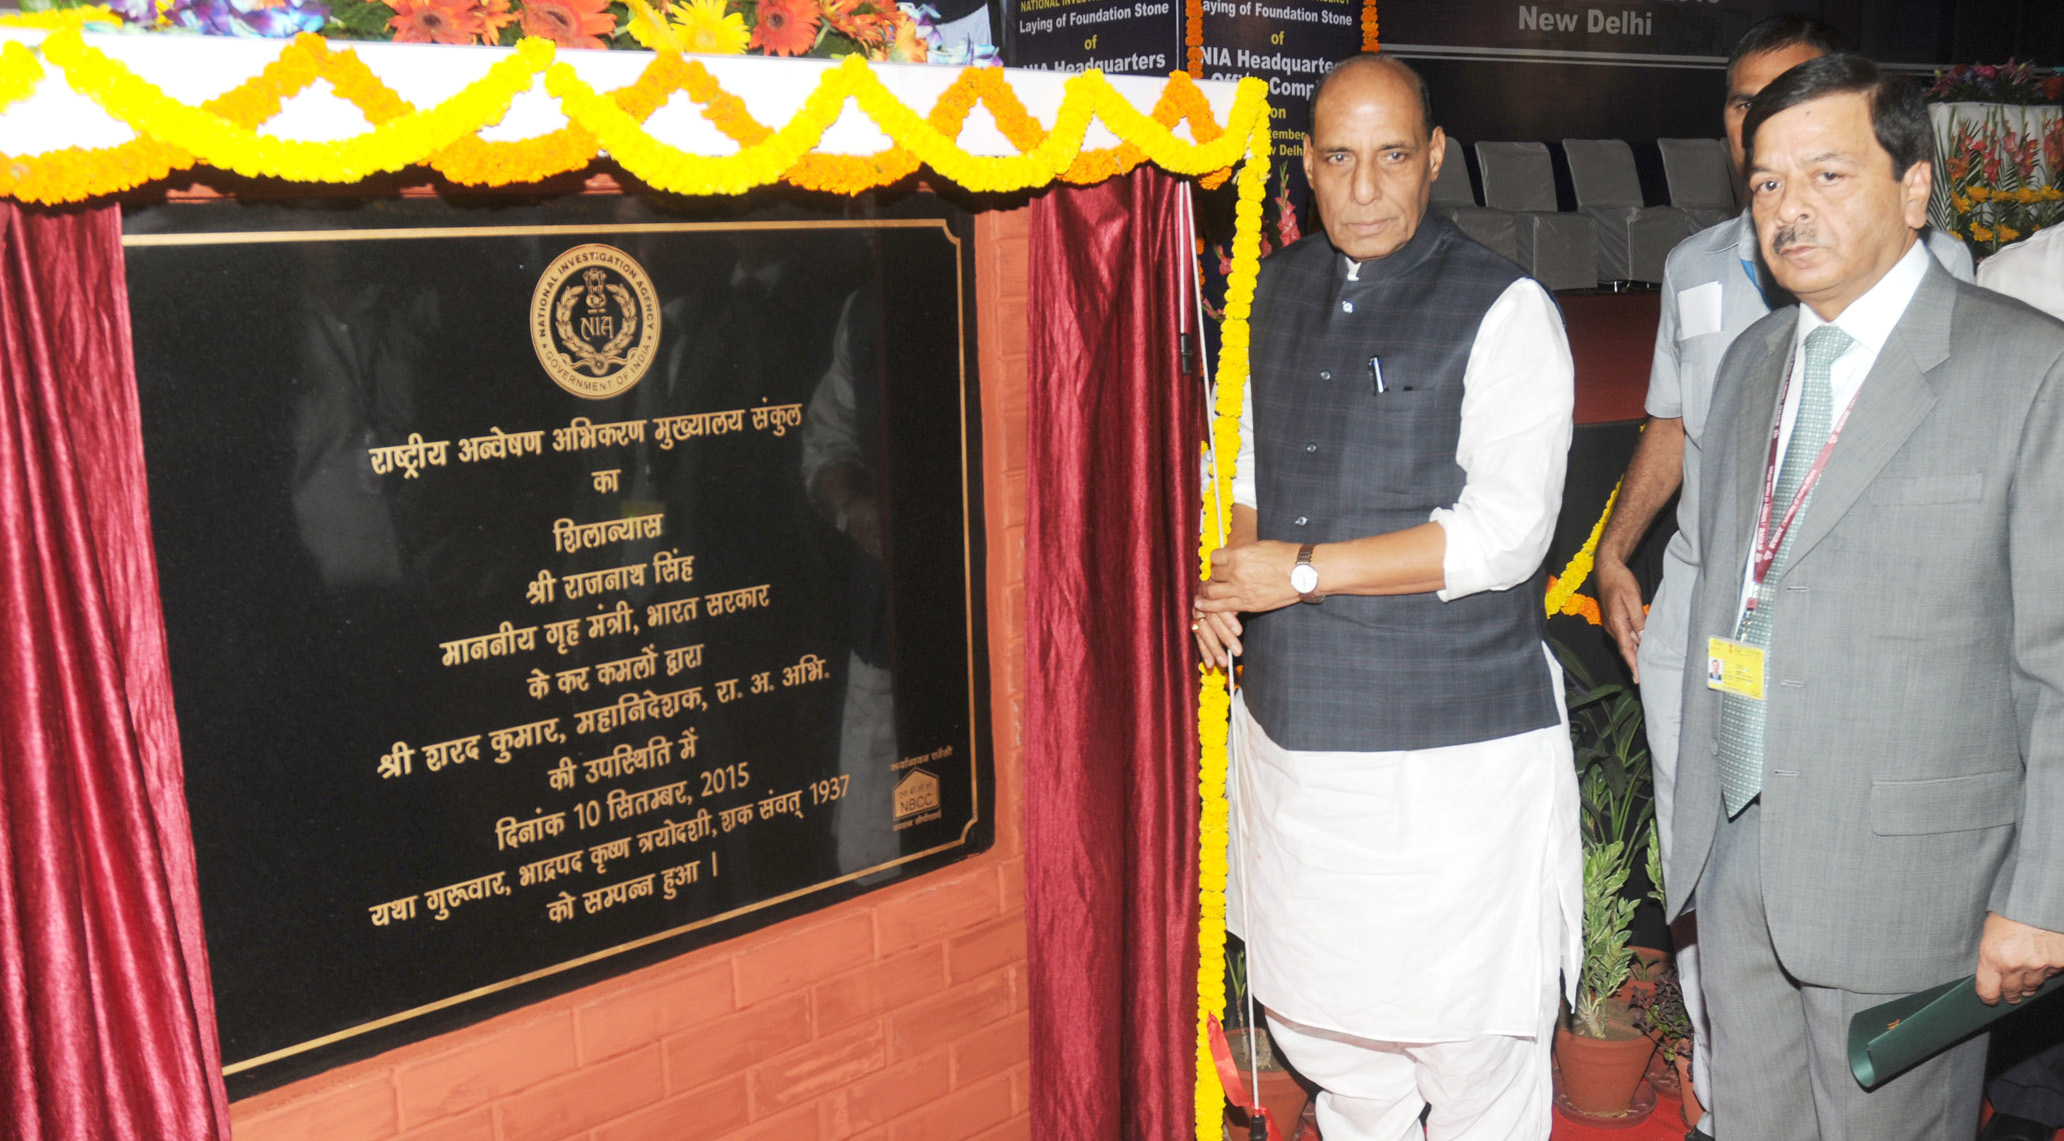 The Union Home Minister, Shri Rajnath Singh unveiling the plaque to the lay foundation stone of the National Investigation Agency, Head Quarters Complex, in New Delhi on September 10, 2015.